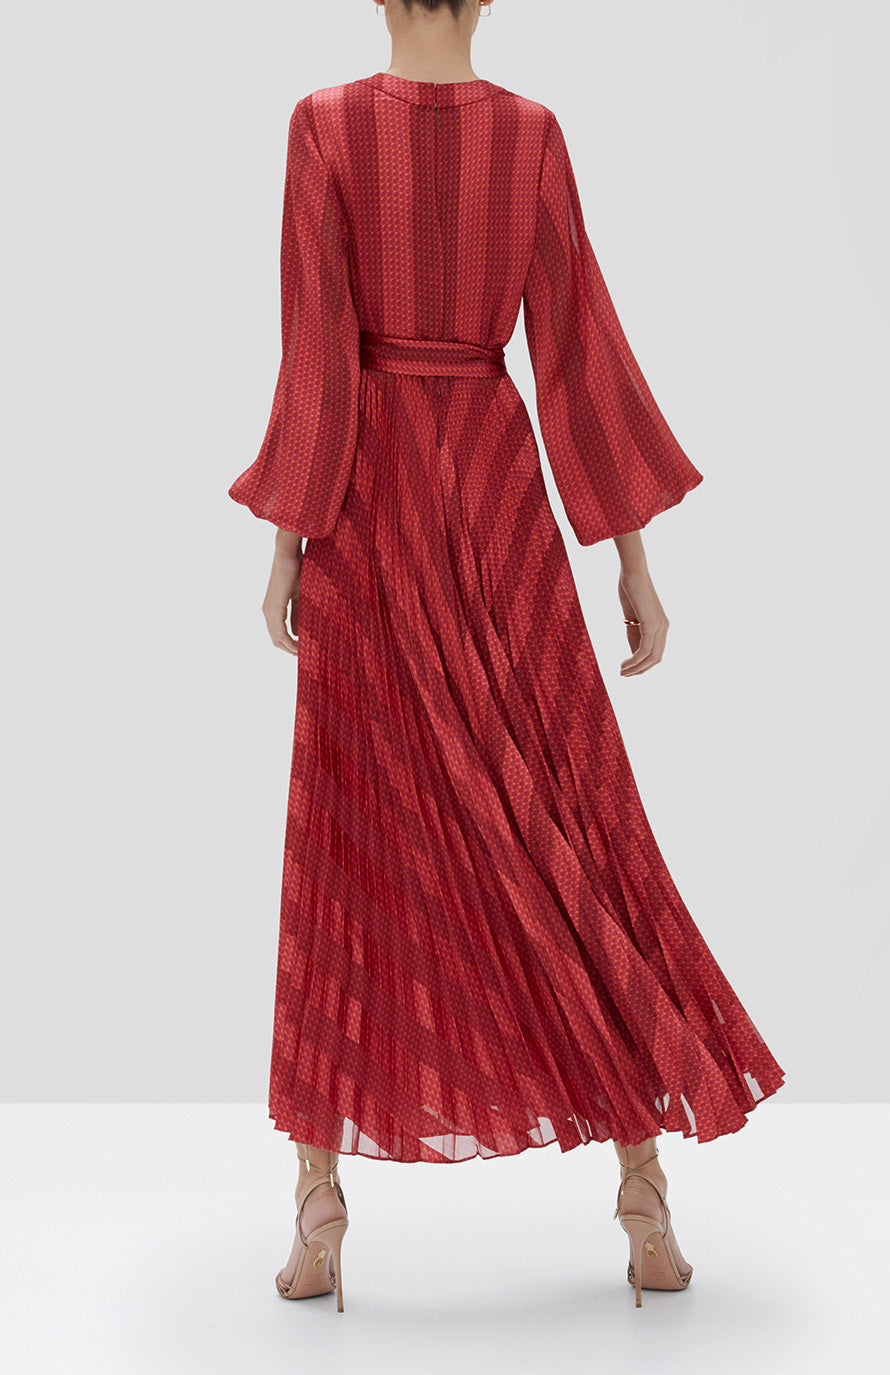 Alexis Salomo Dress in Red Geo Stripes - Rear View